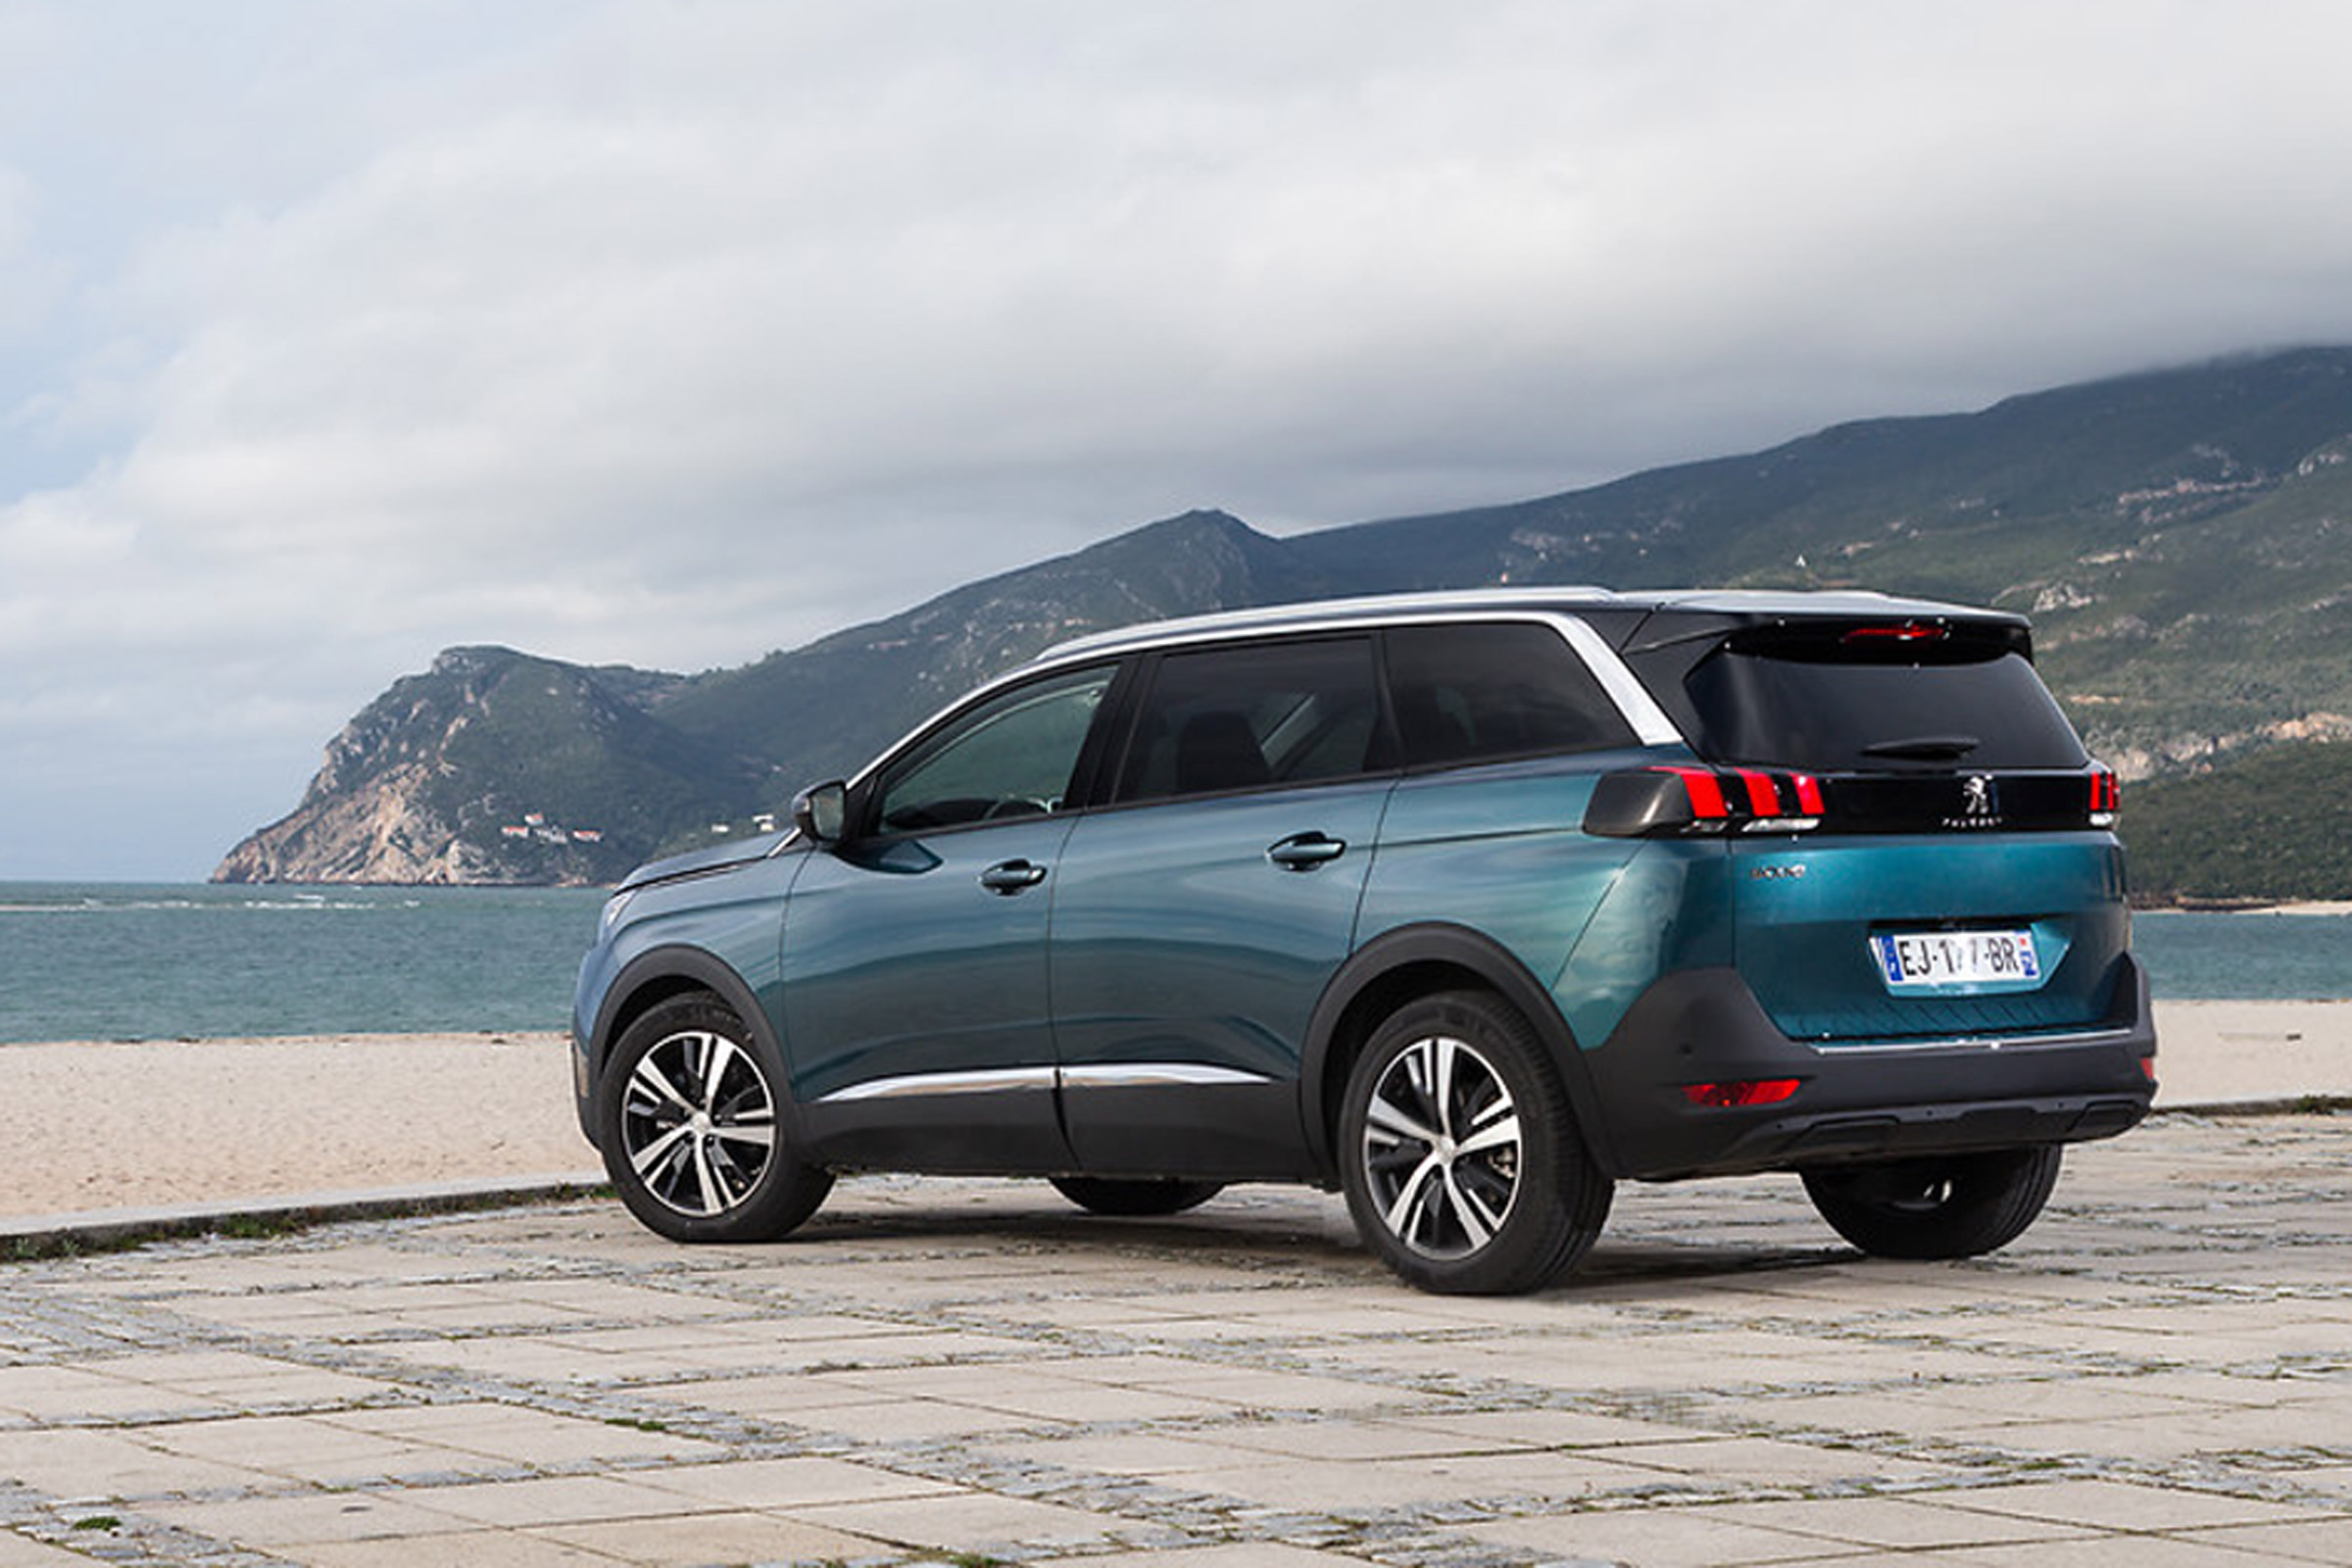 2017 Peugeot 5008 SUV Exterior Rear And Side (View 1 of 18)